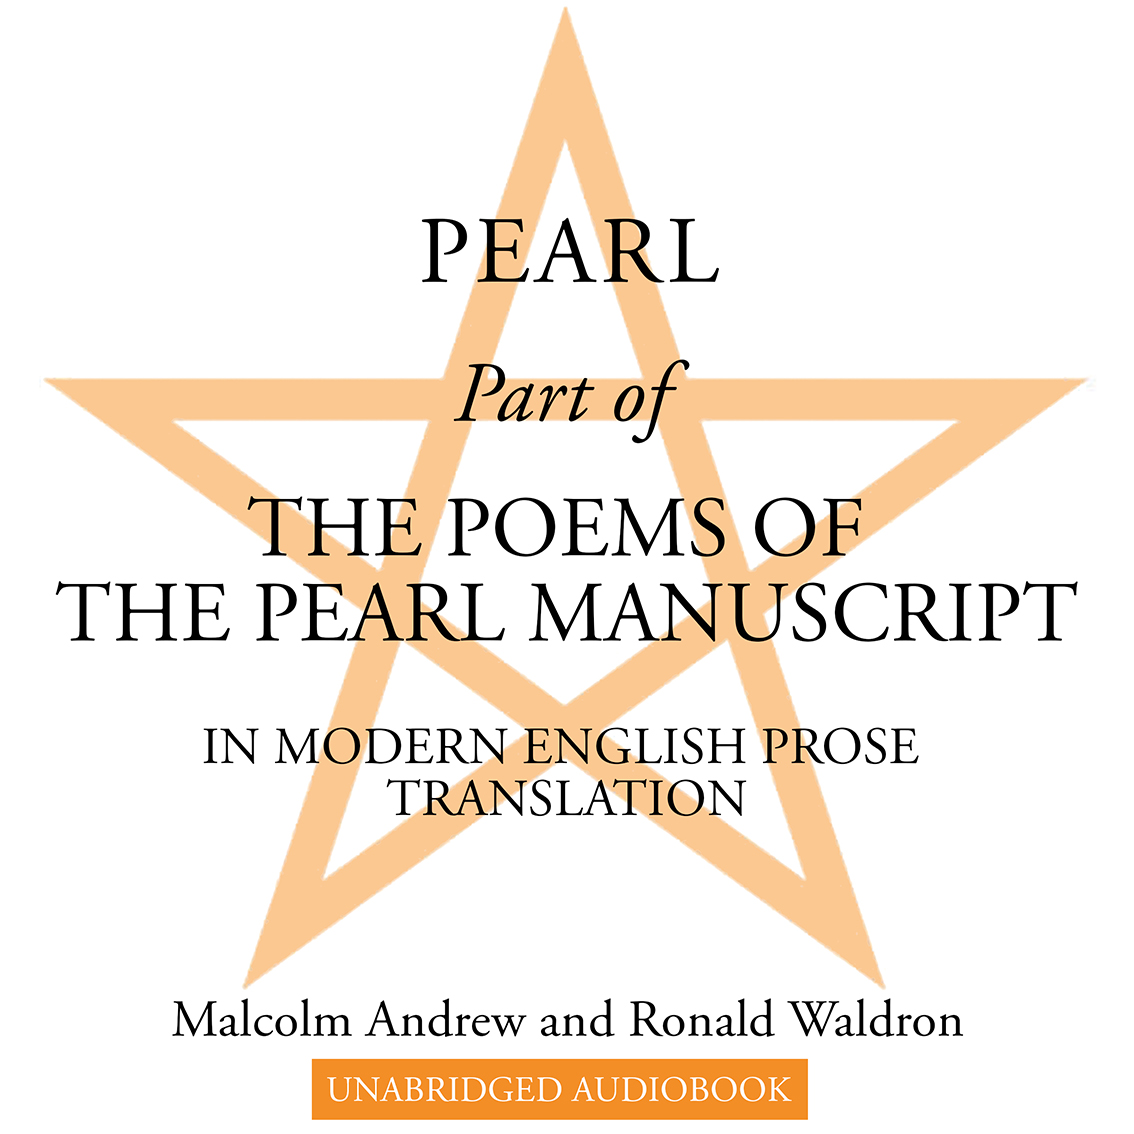 Pearl, Part of The Poems of the Pearl Manuscript in Modern English Prose Translation. authors: Malcolm Andrew Ronald Waldron. Unabridged audiobook.